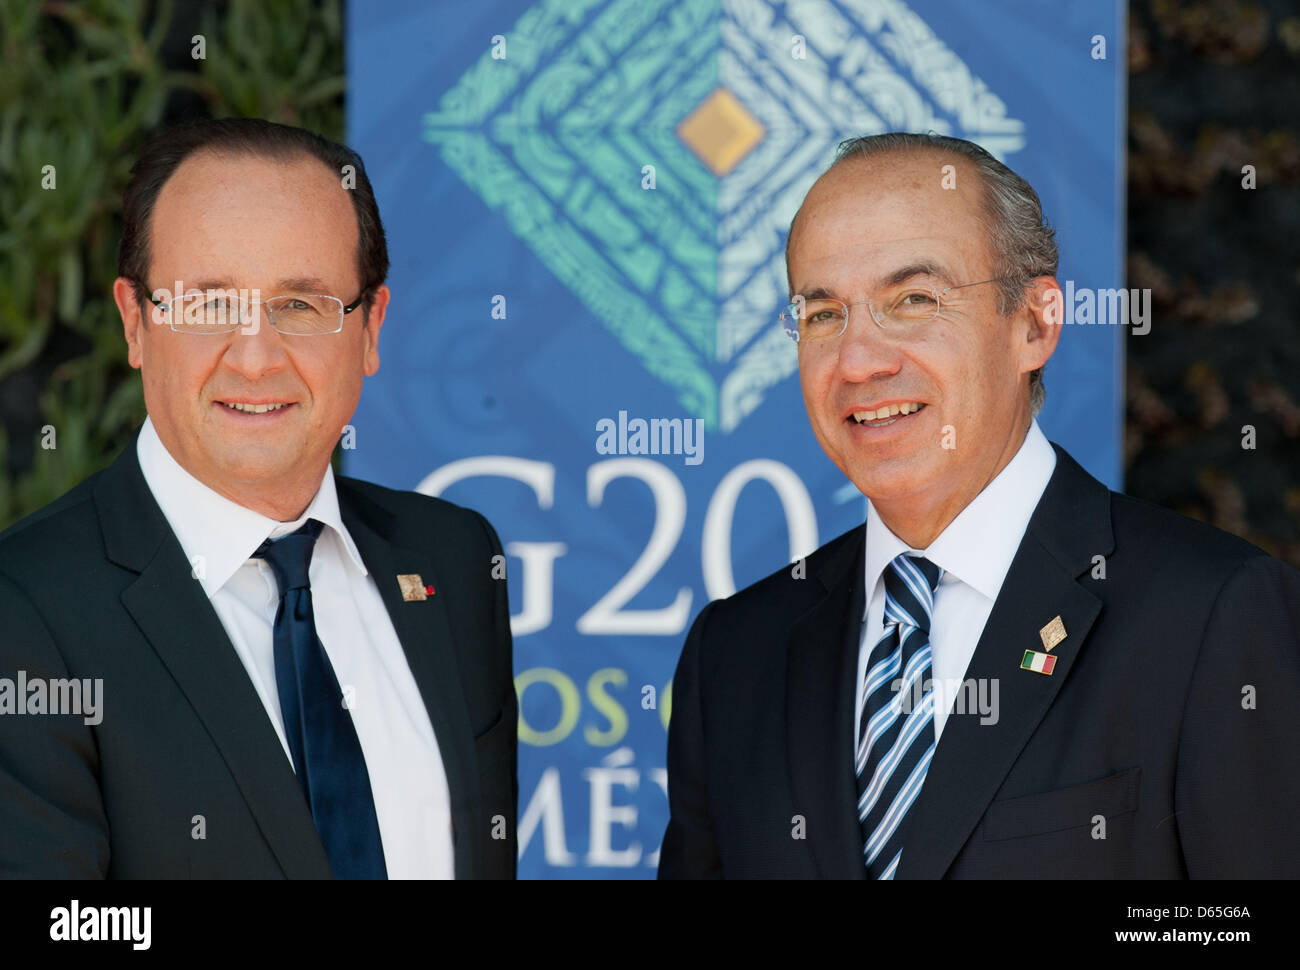 Mexican president felipe calderon r and french president francois mexican president felipe calderon r and french president francois hollande greet each other before the first meeting at the g20 summit in losa cabos m4hsunfo